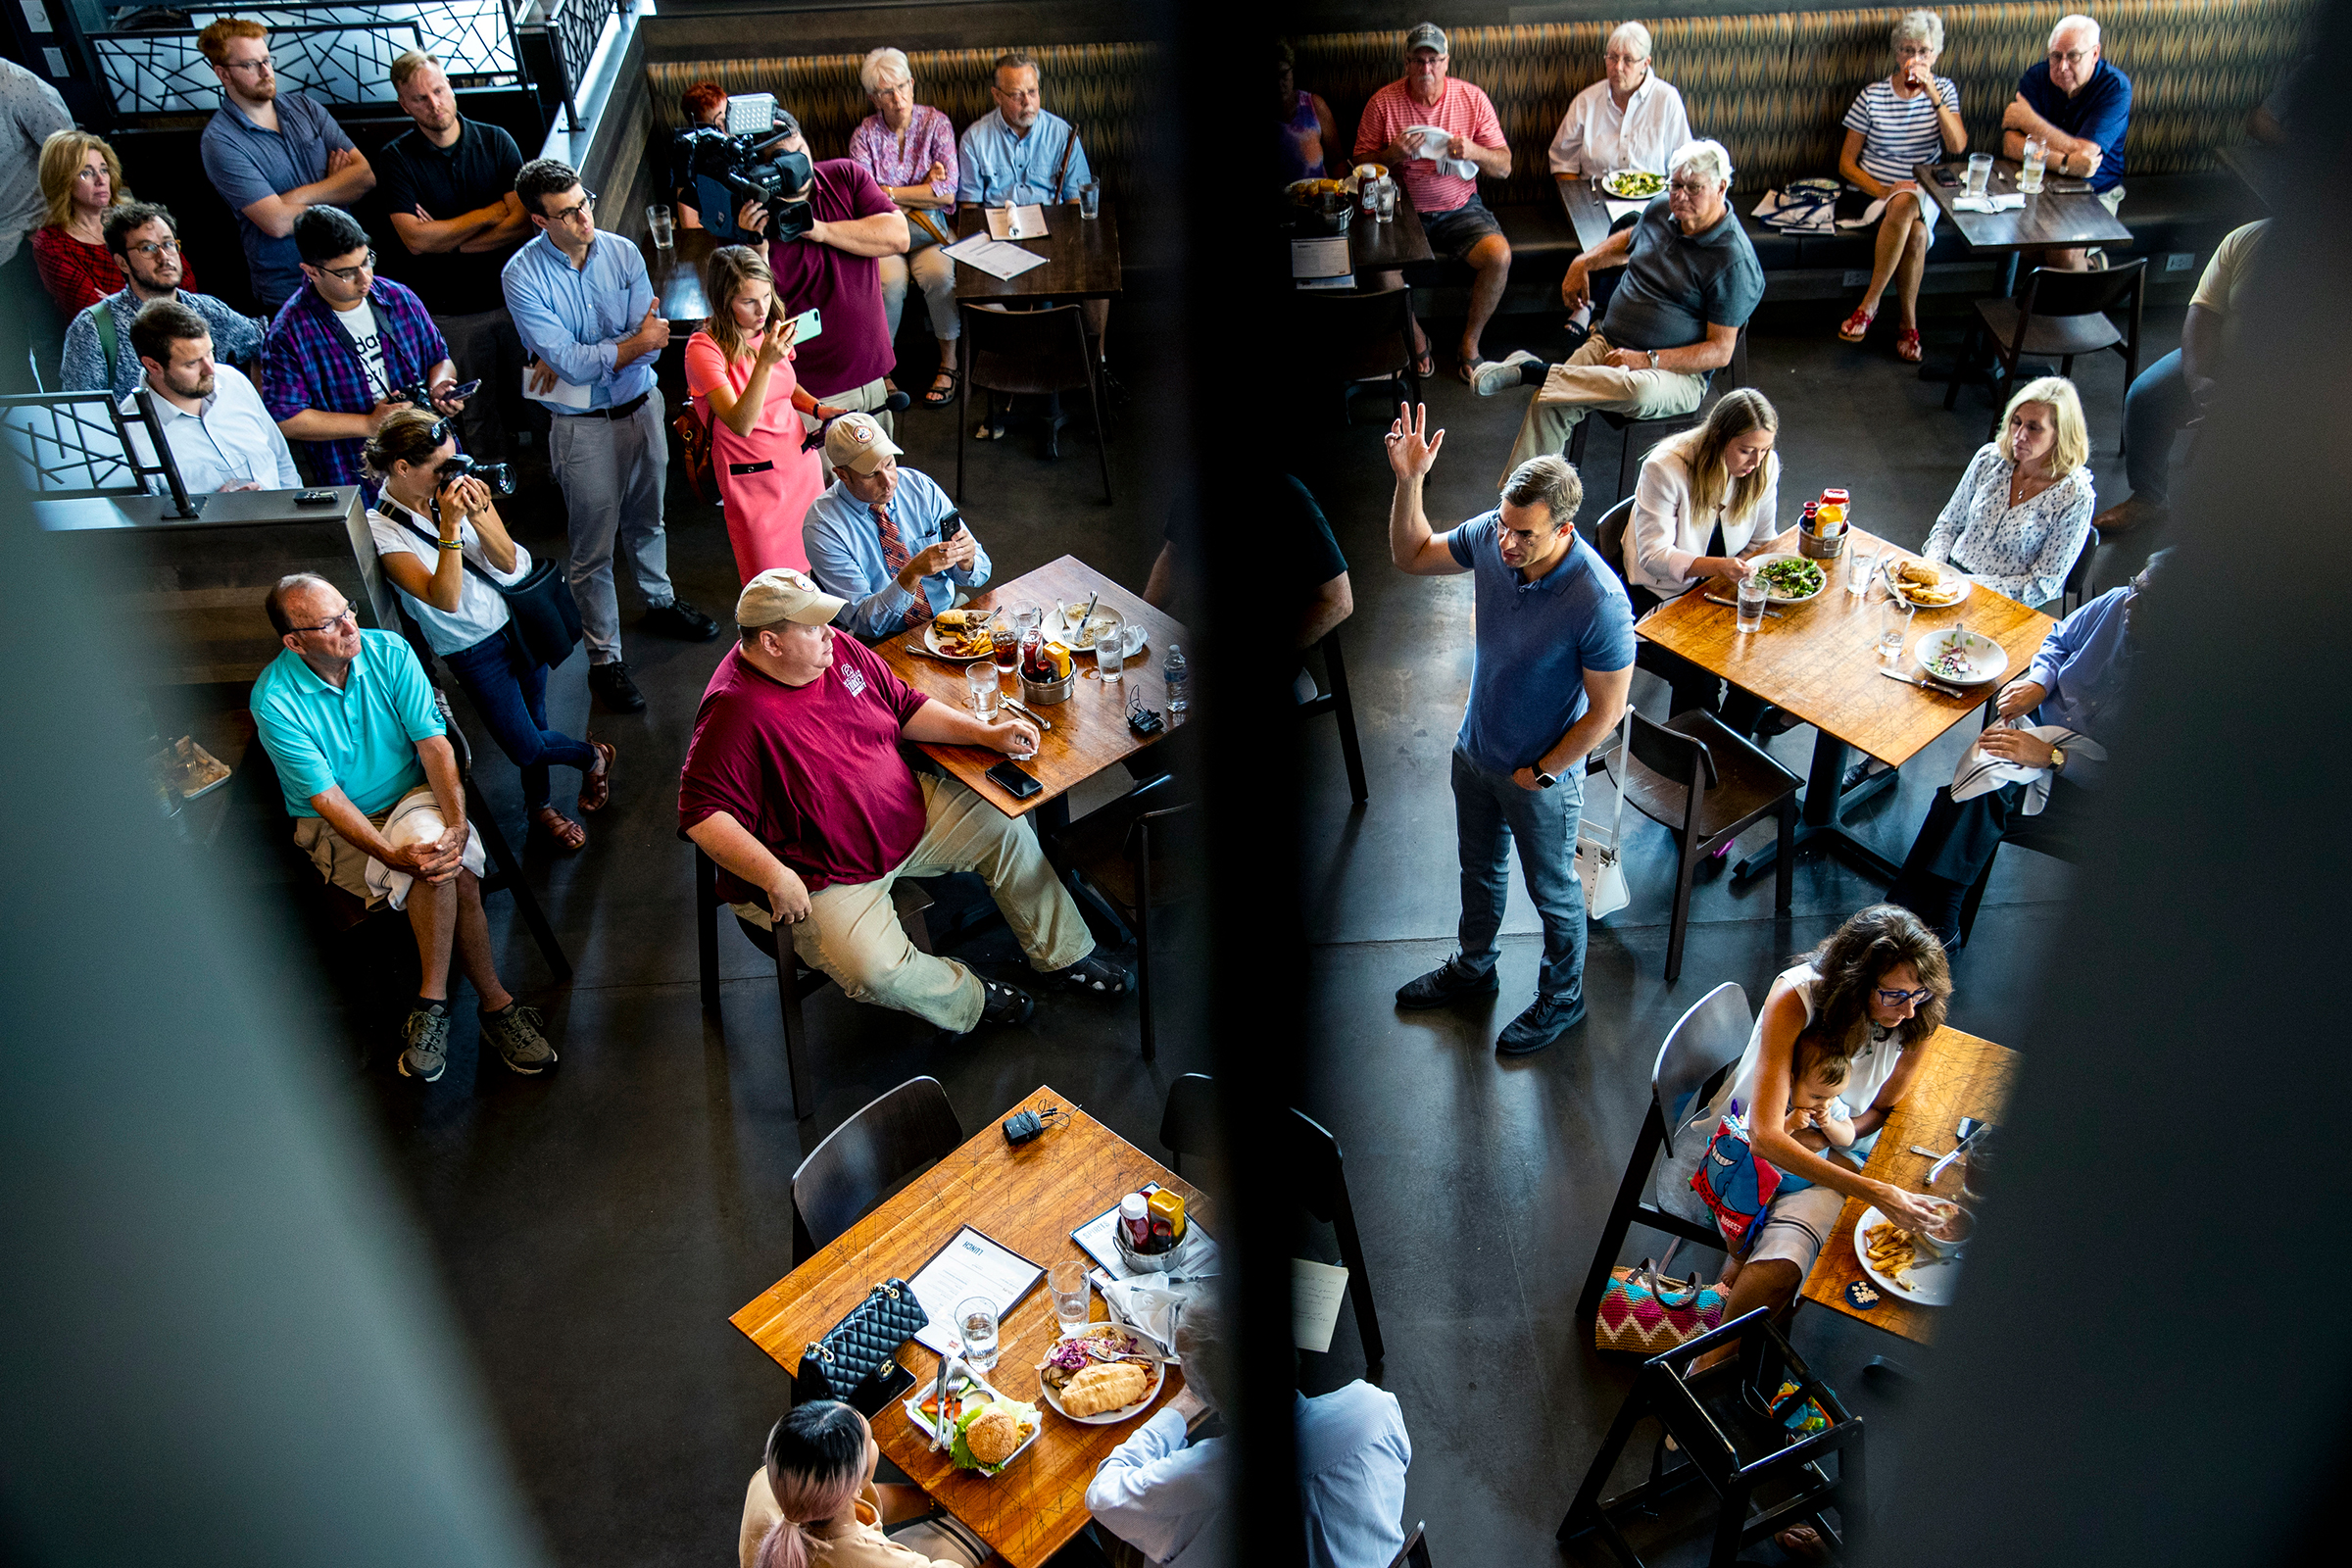 U.S. Rep. Justin Amash, I-Cascade Township, center, holds a constituent meeting at Rising Grinds Cafe, in Grand Rapids, Mich., on Wednesday, Aug. 21, 2019. (Cory Morse/The Grand Rapids Press via AP)